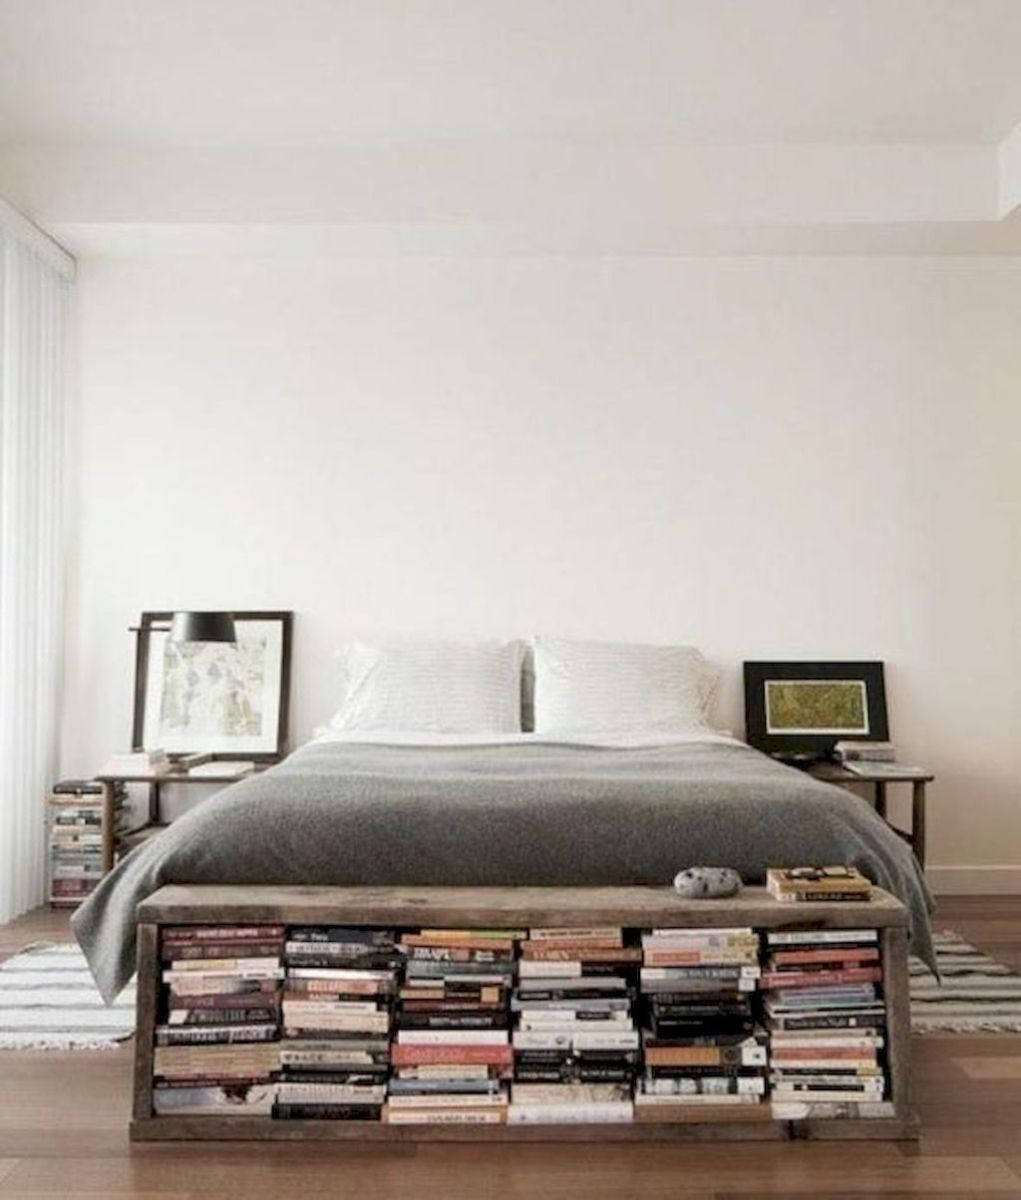 Brilliant Small Apartment Decorating Ideas You Need To Try 08